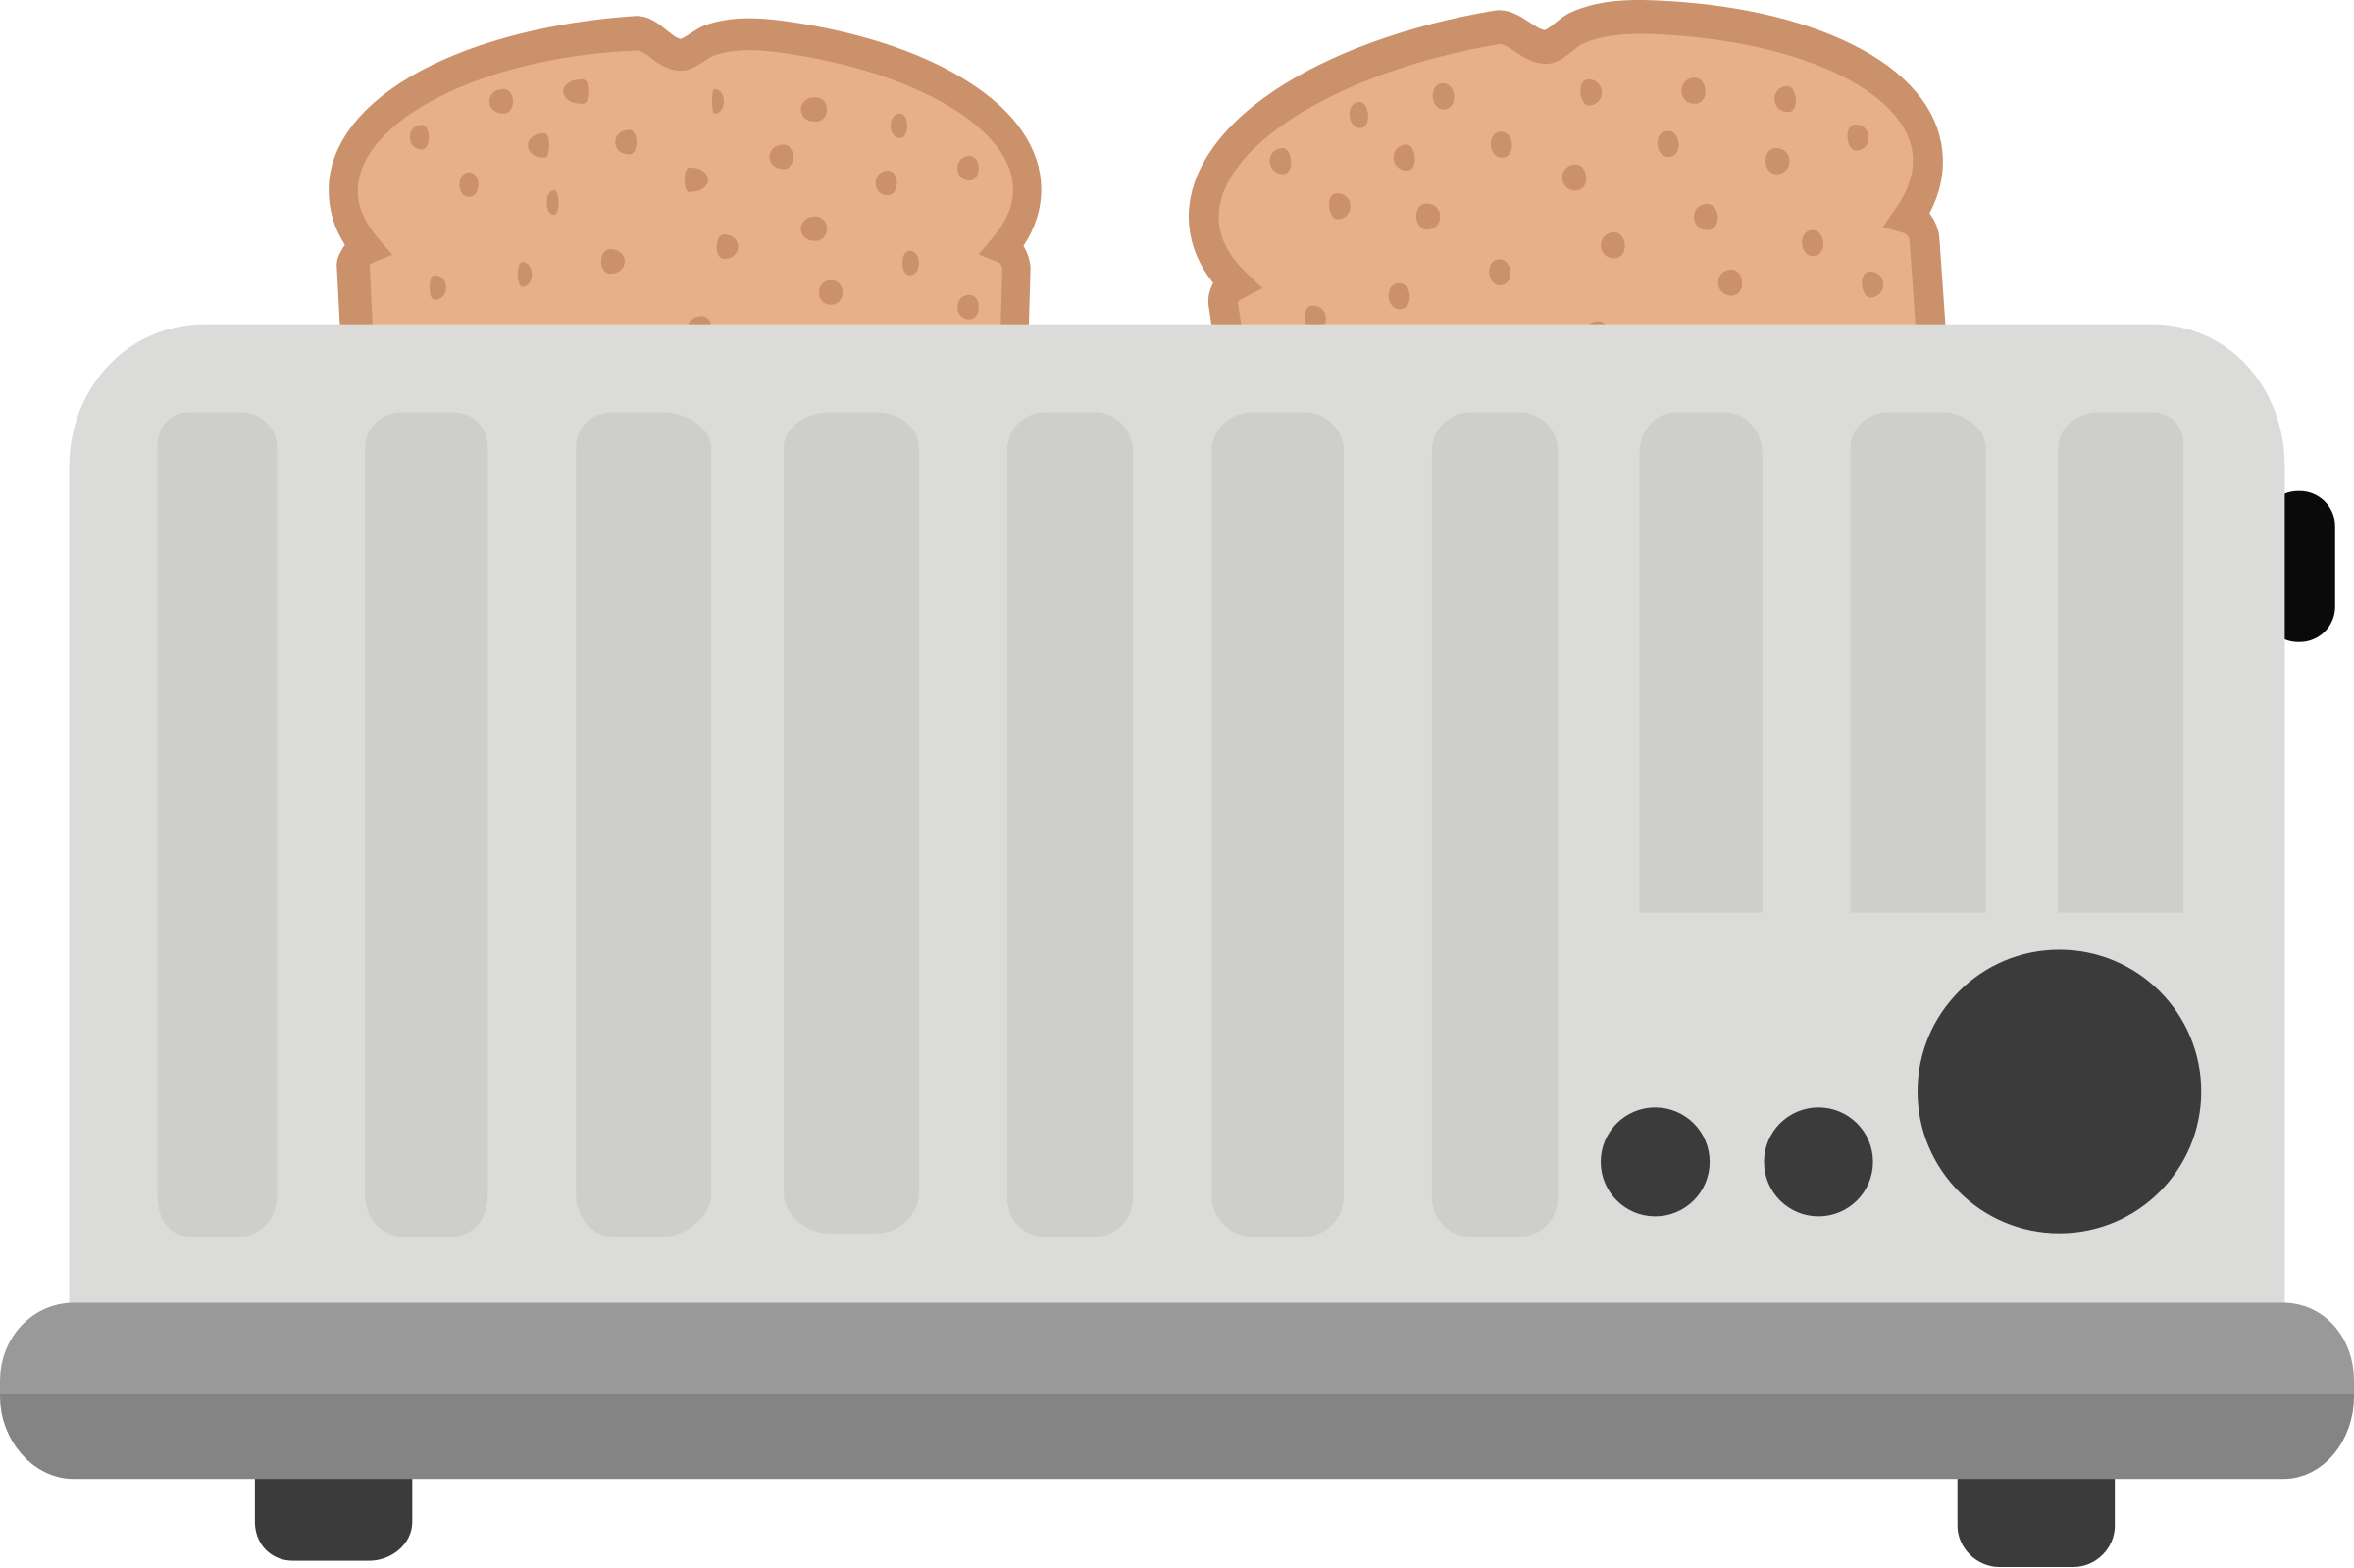 Waffle clipart toaster. With toast big image